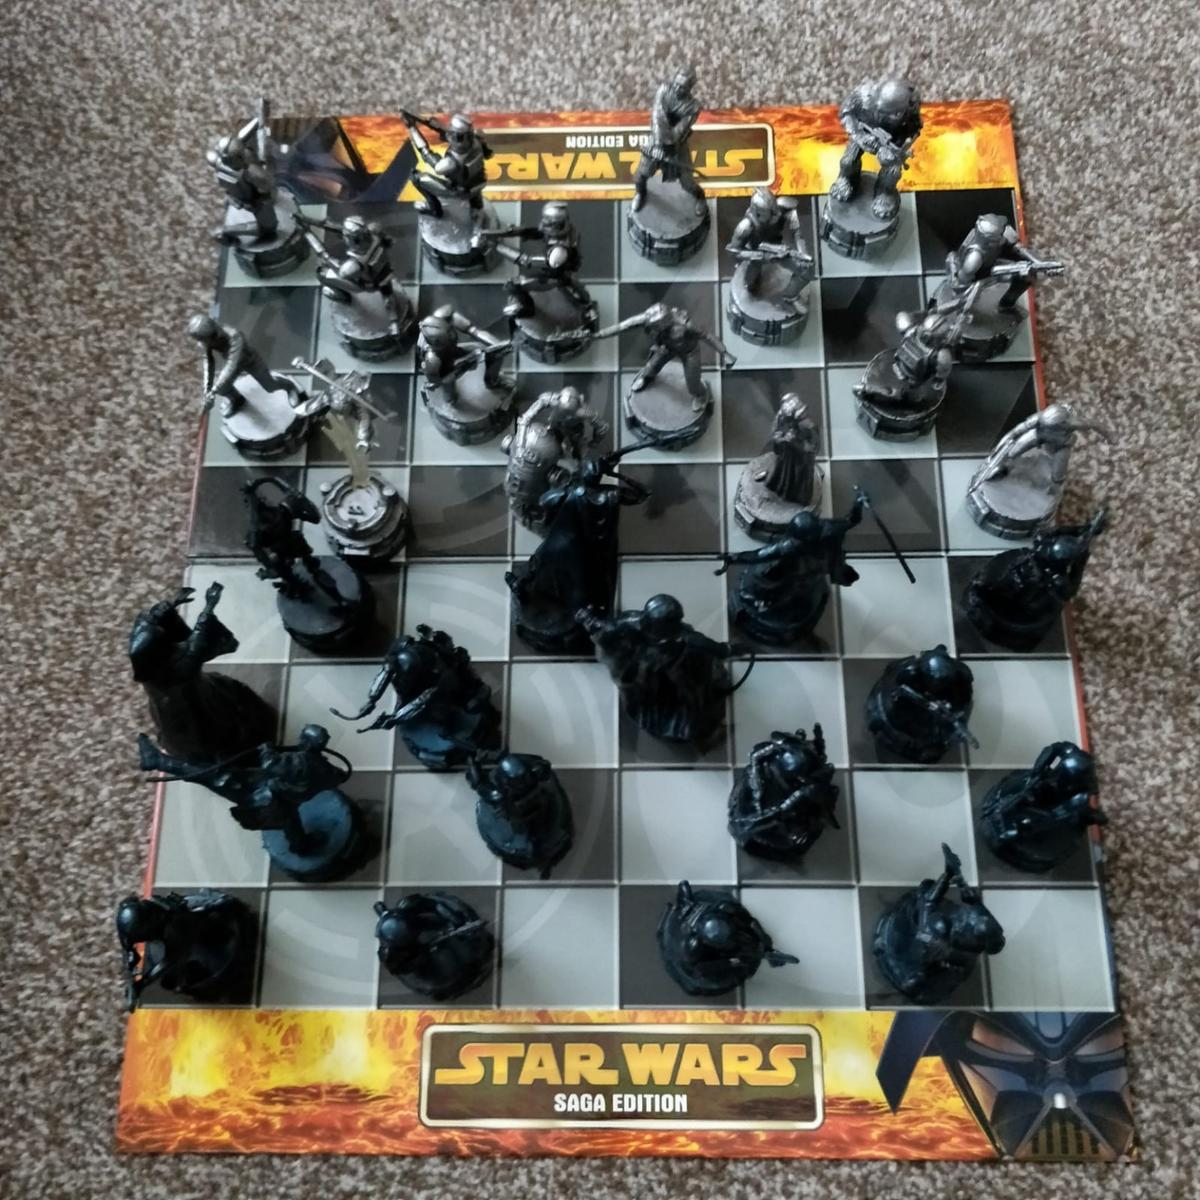 A lovely collectable Chess set for them Starwars fans.